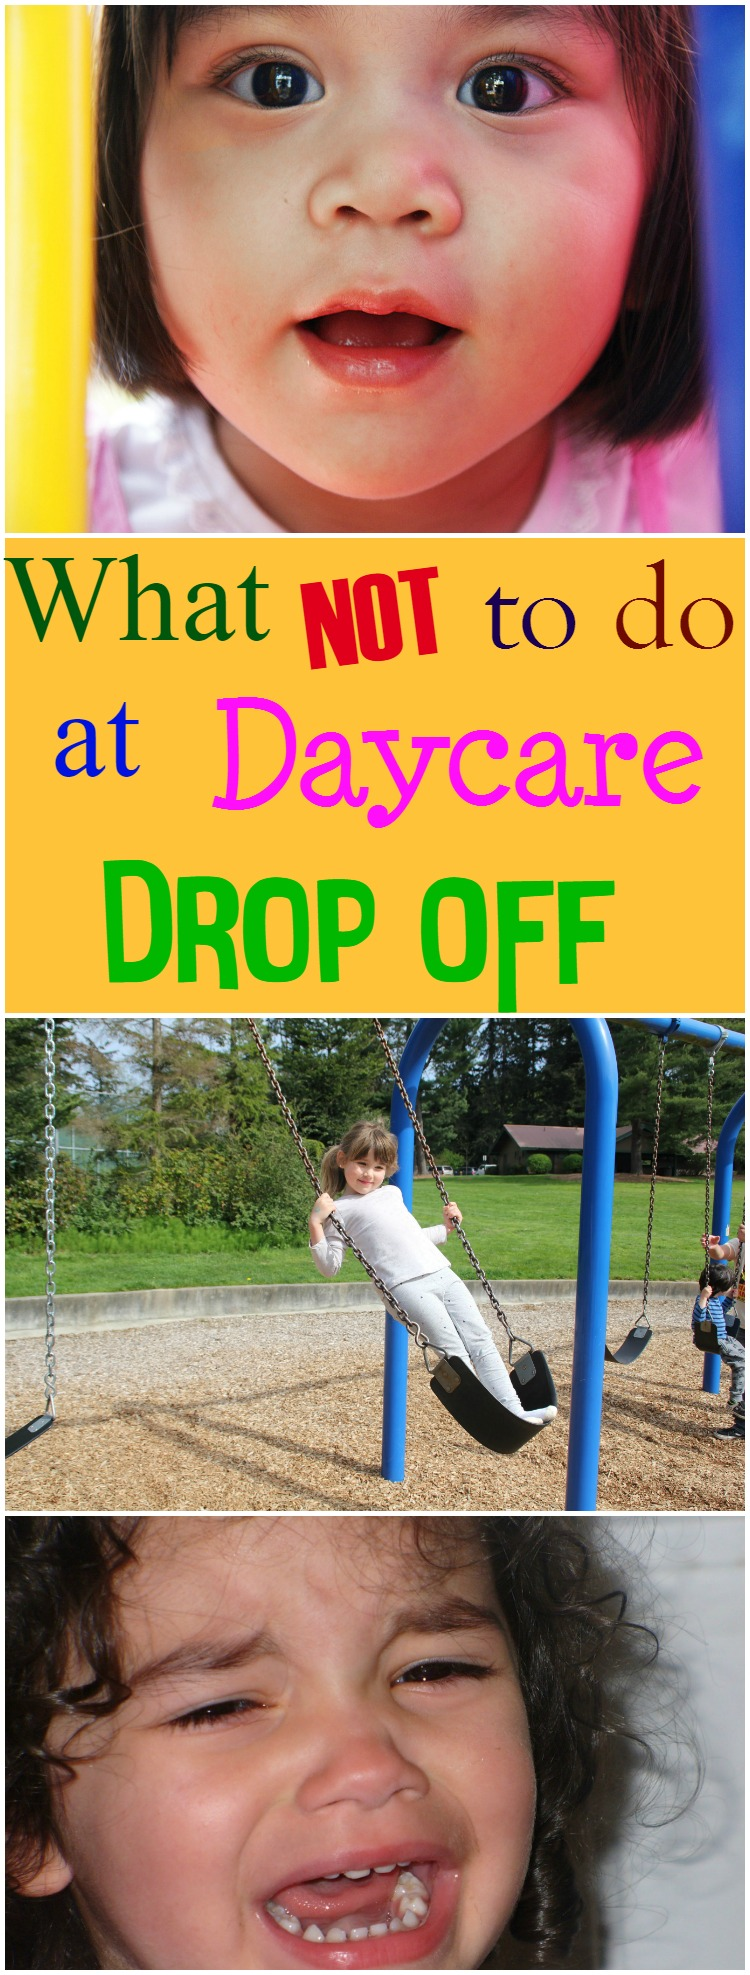 an-important-list-of-what-not-to-do-during-daycare-drop-off